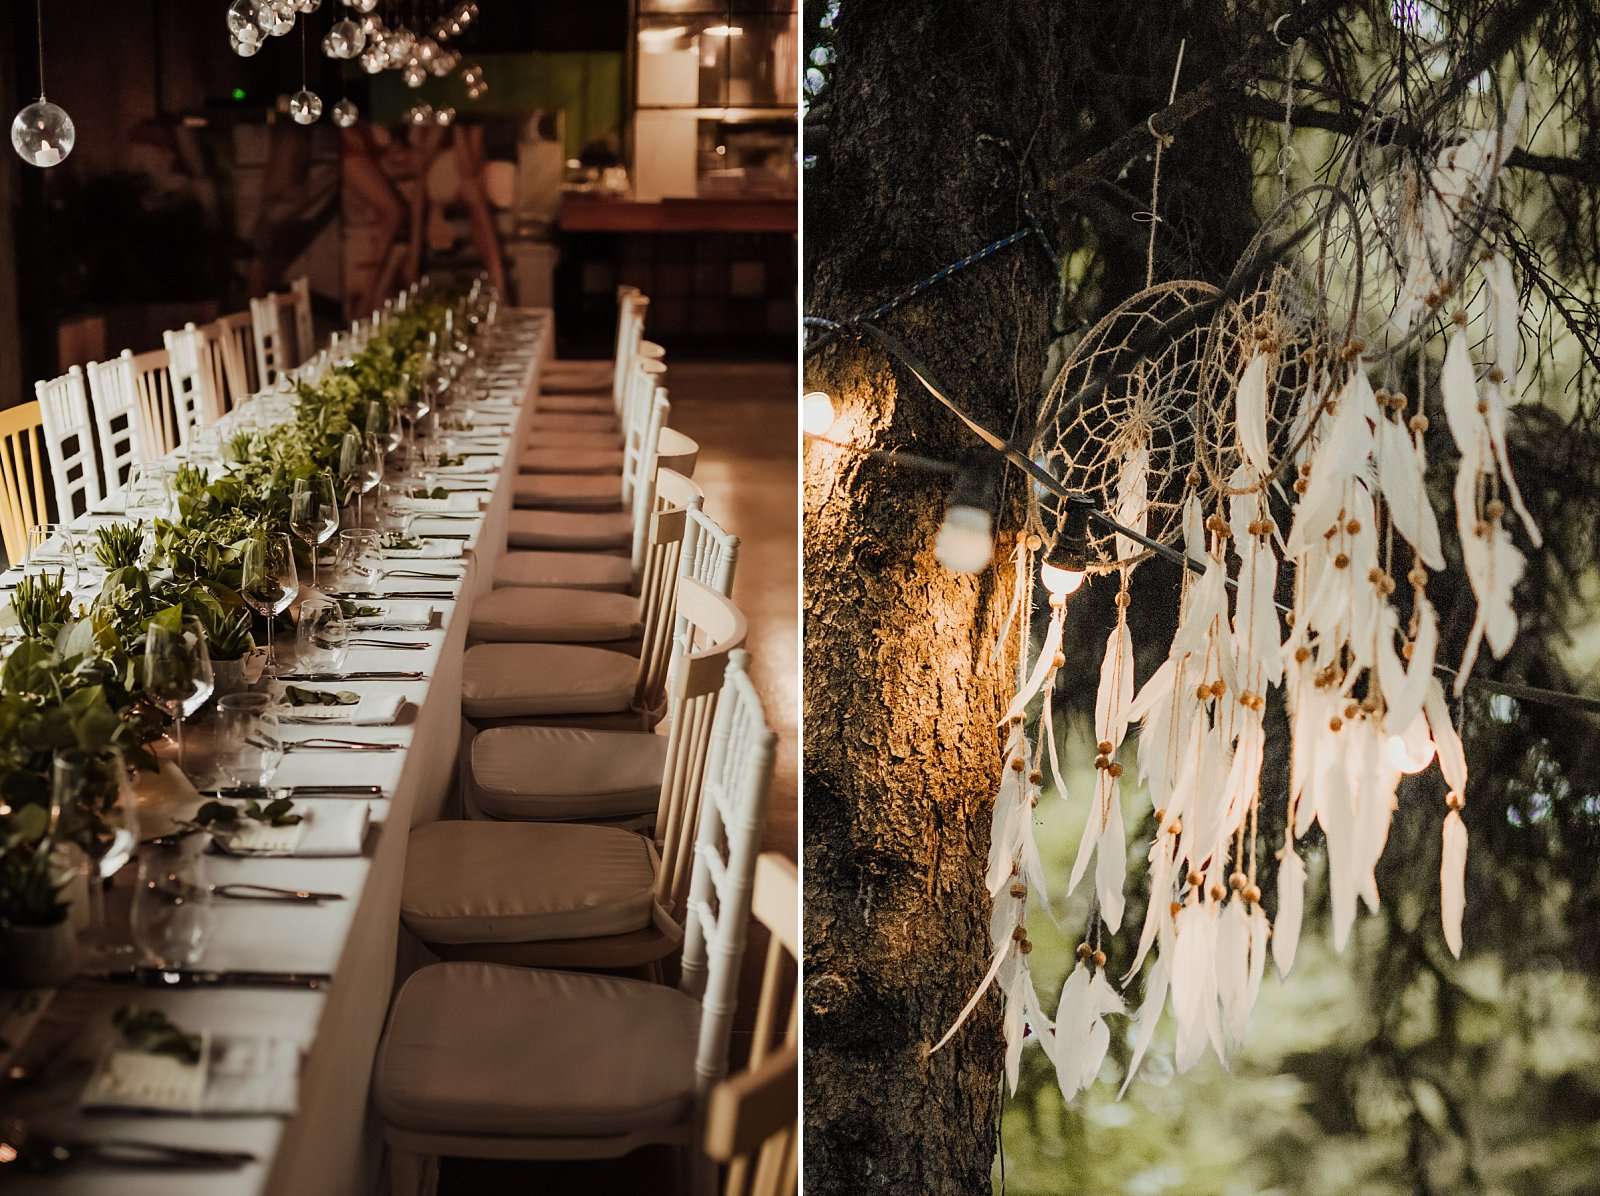 boho-industrial-wedding-bucharest-maison-dadoo-liaandlau